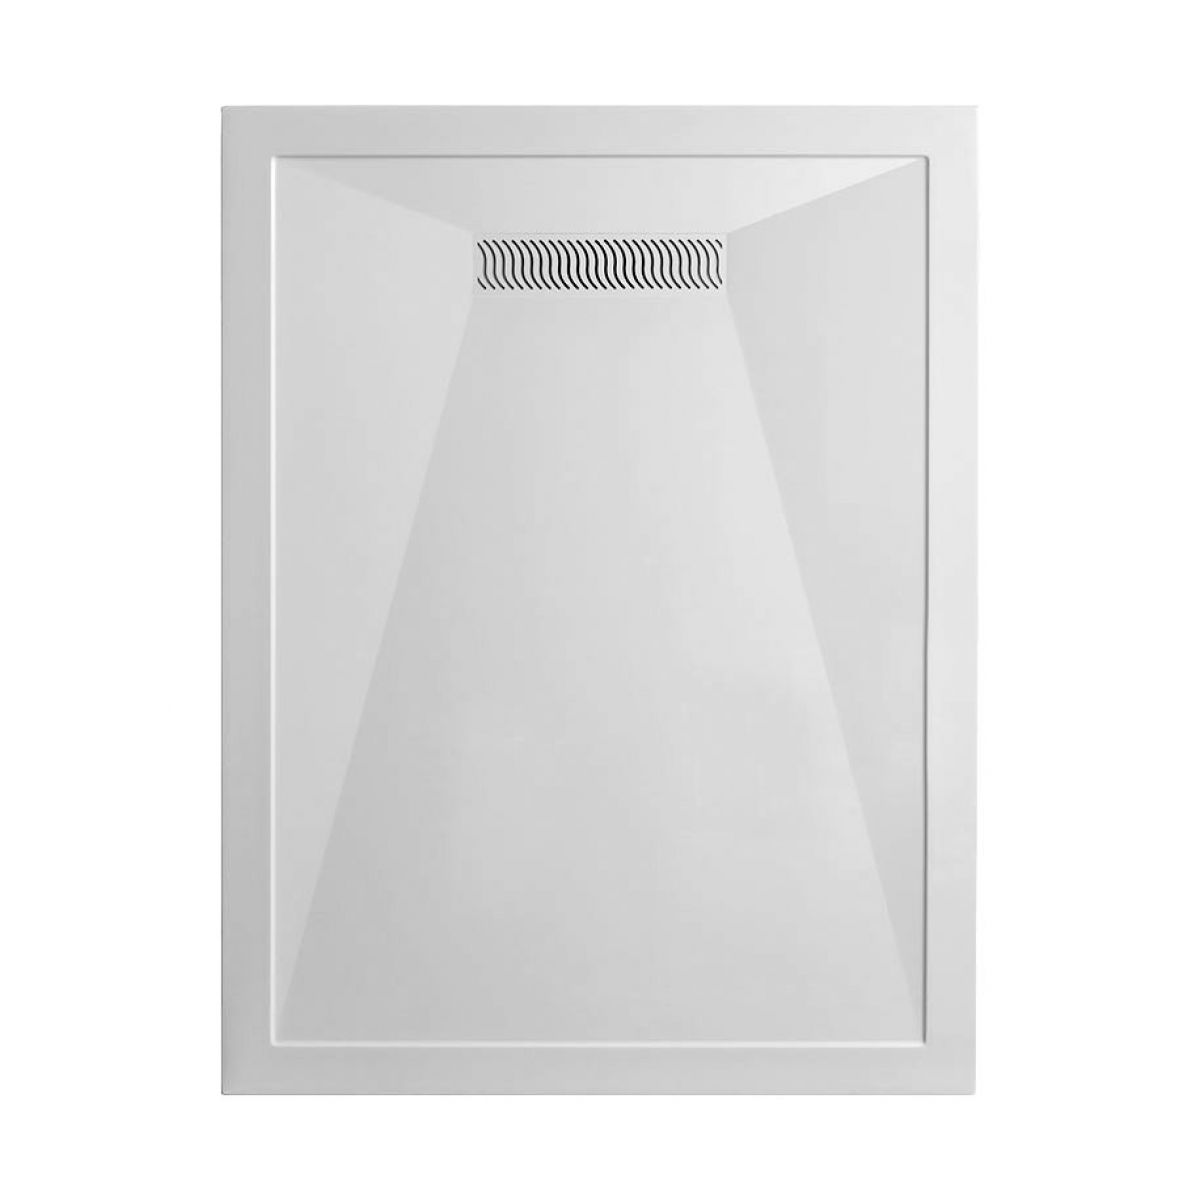 Simpsons 25mm Stone Resin Shower Tray with Linear Waste : UK Bathrooms